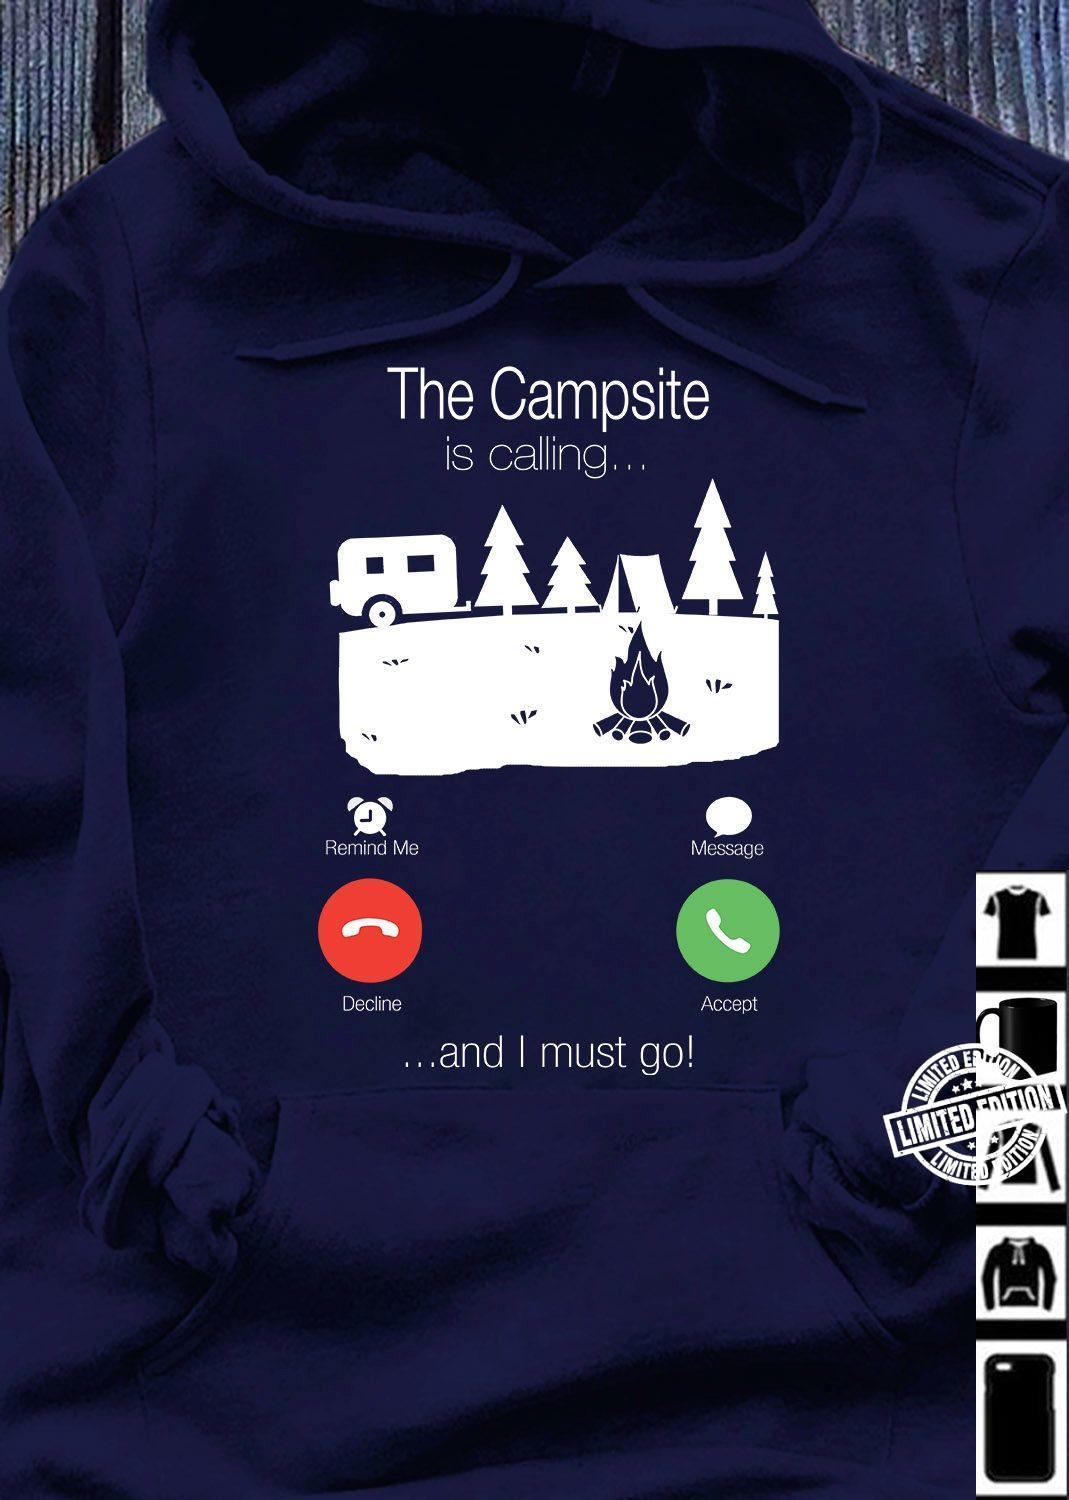 The campsite is calling and I must go shirt